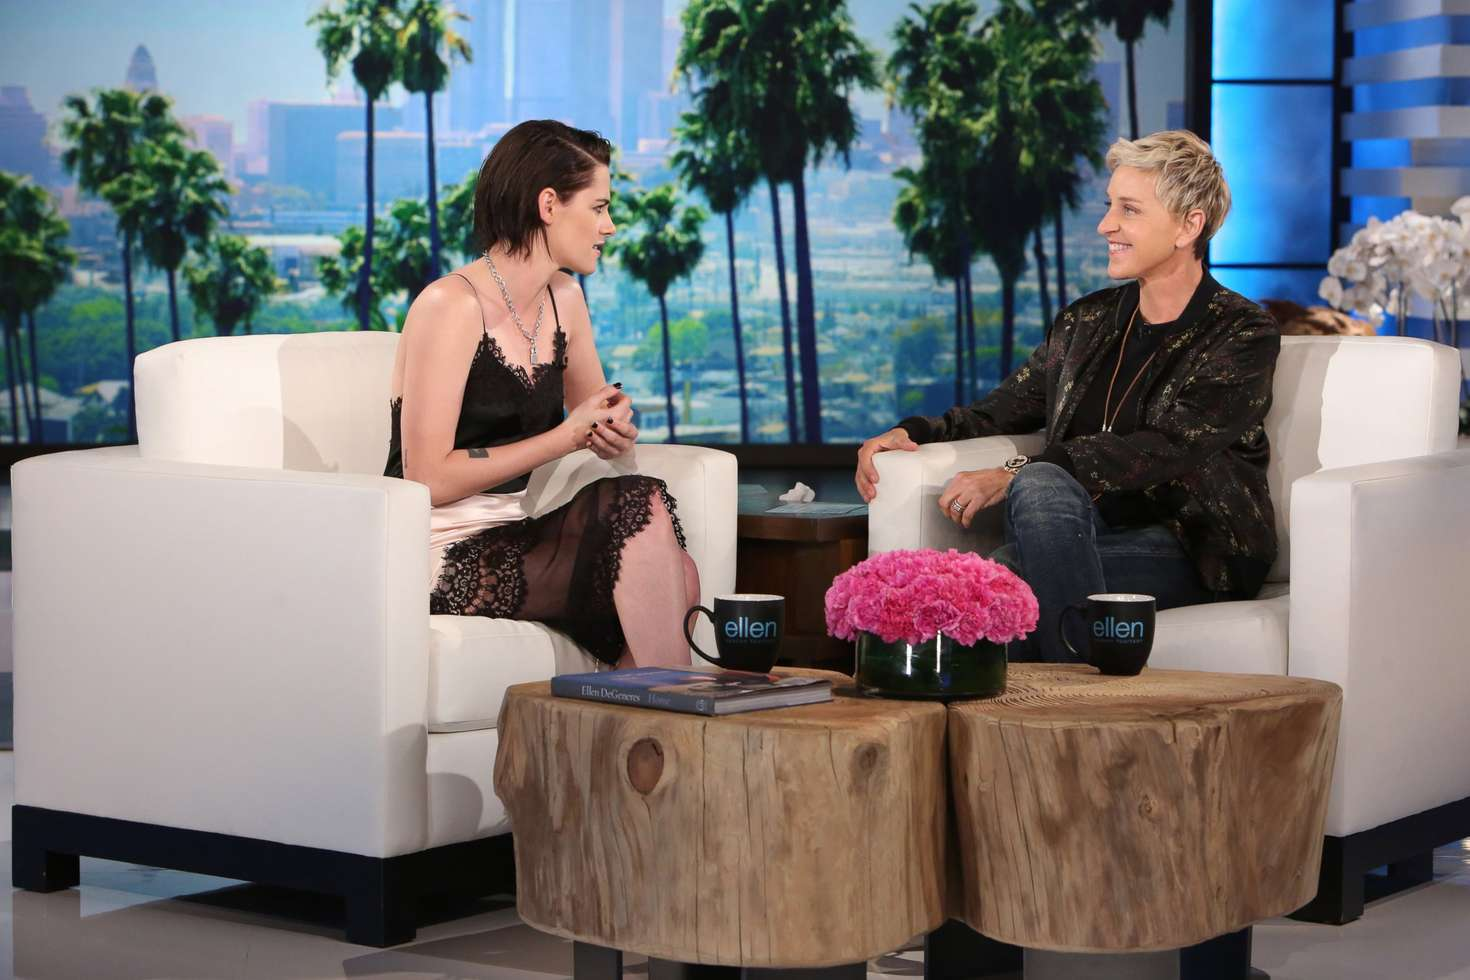 Kristen stewart the ellen degeneres show in burbank - Ellen show videos ...